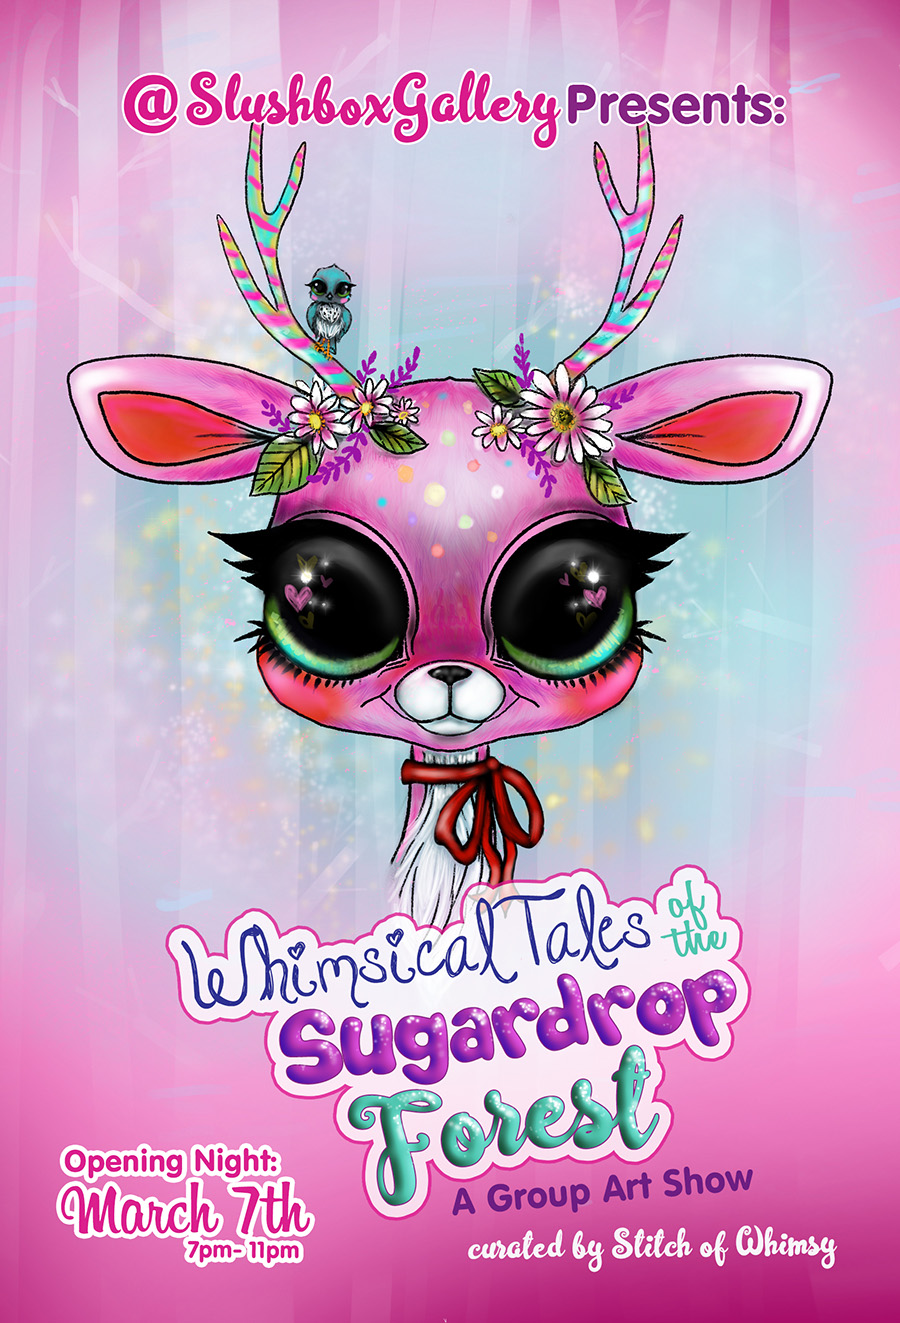 Whimsical Tales of Sugar Forest